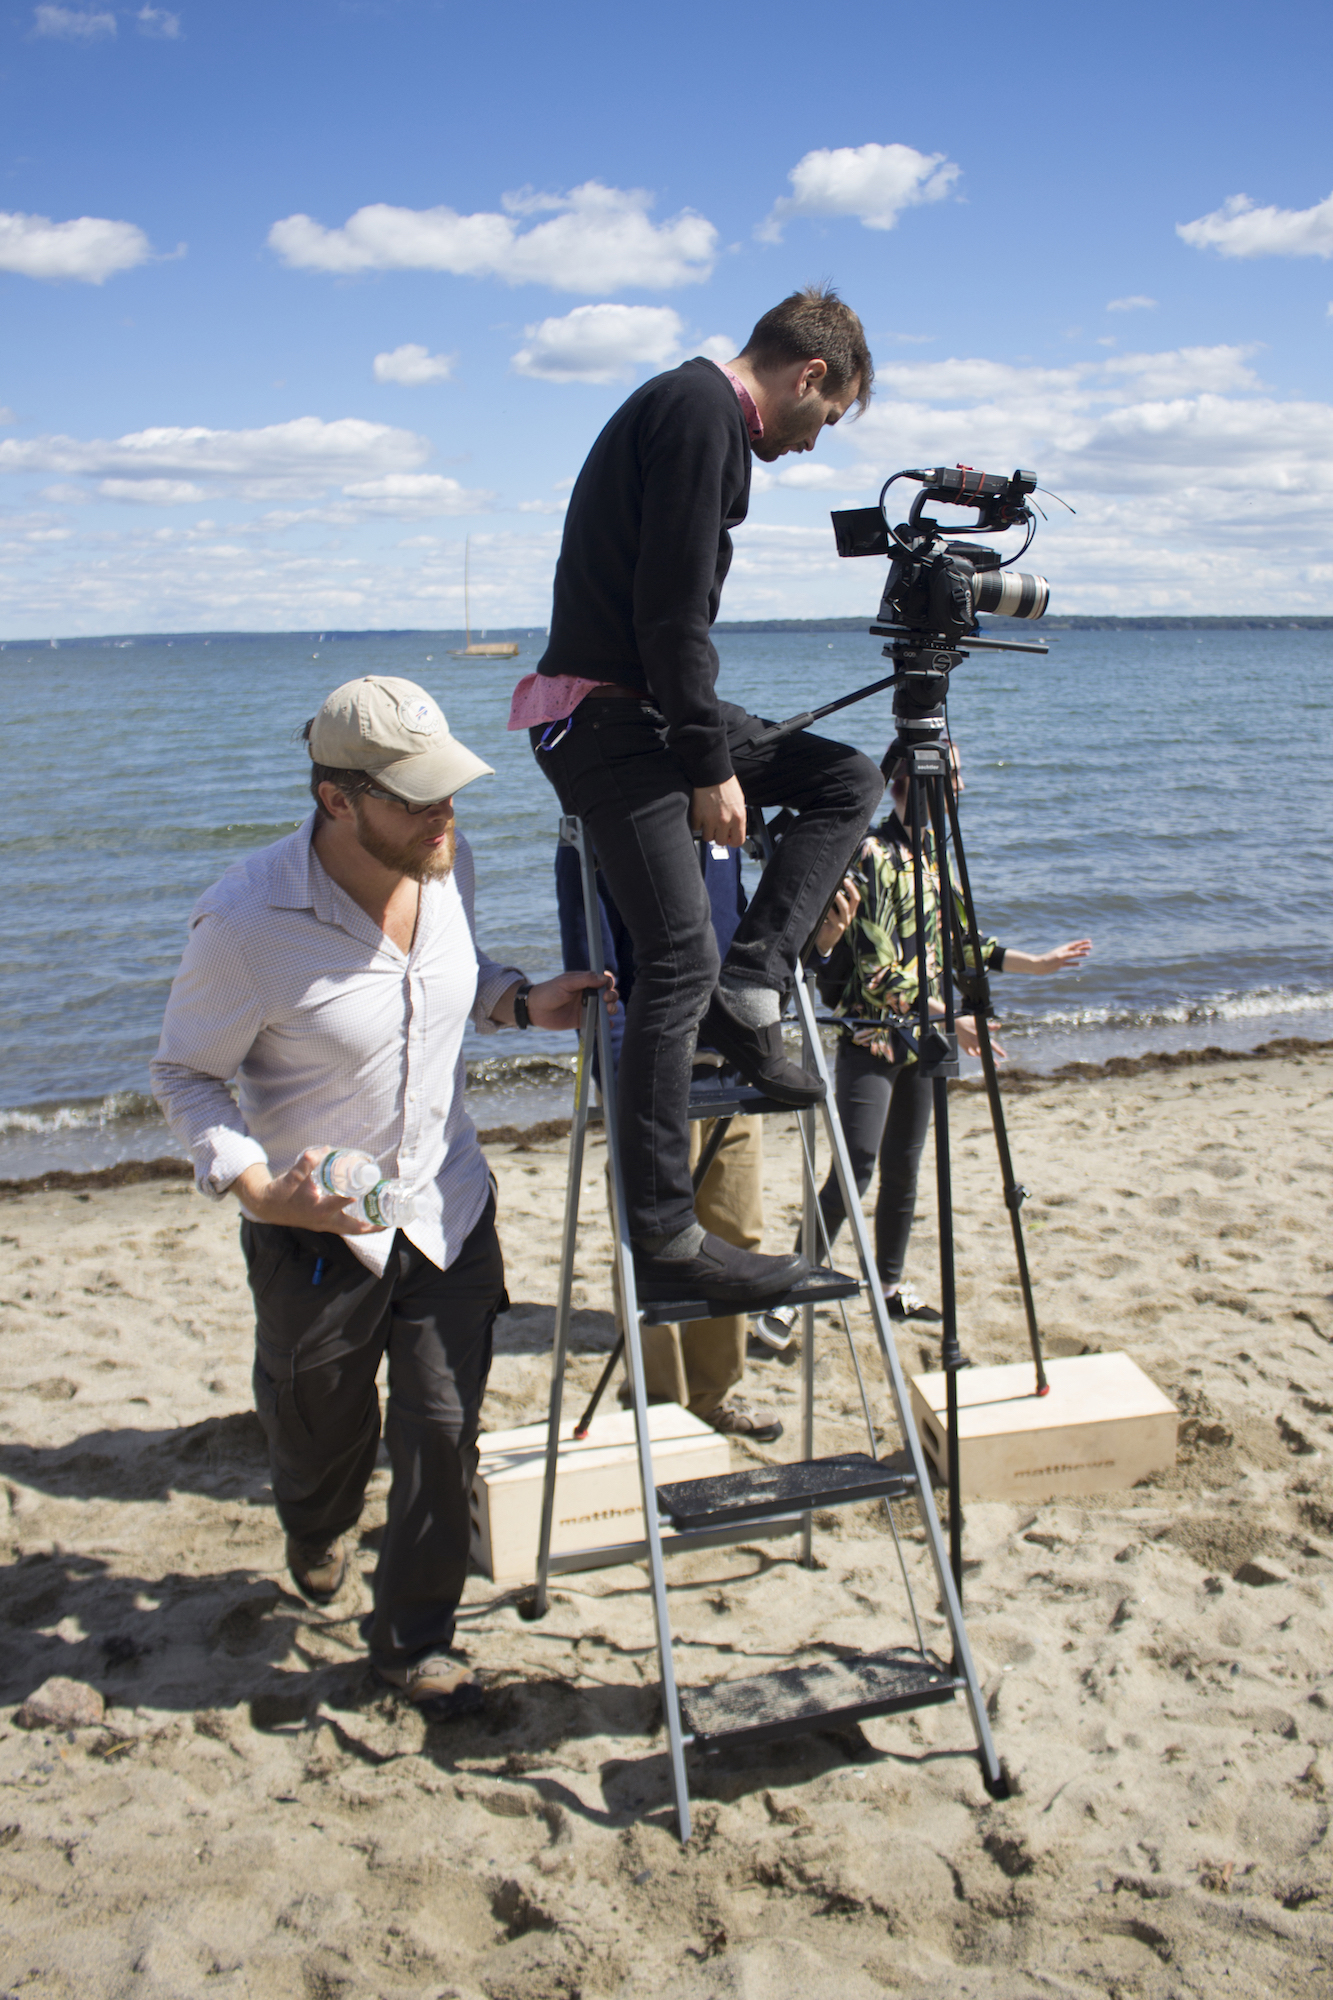 Grip/Gaffer Dan Perez de la Garza with Director of Photography Denez McAdoo on the set of Geena Matuson's production of 'Fauxmercials' beach ads, September 2016.